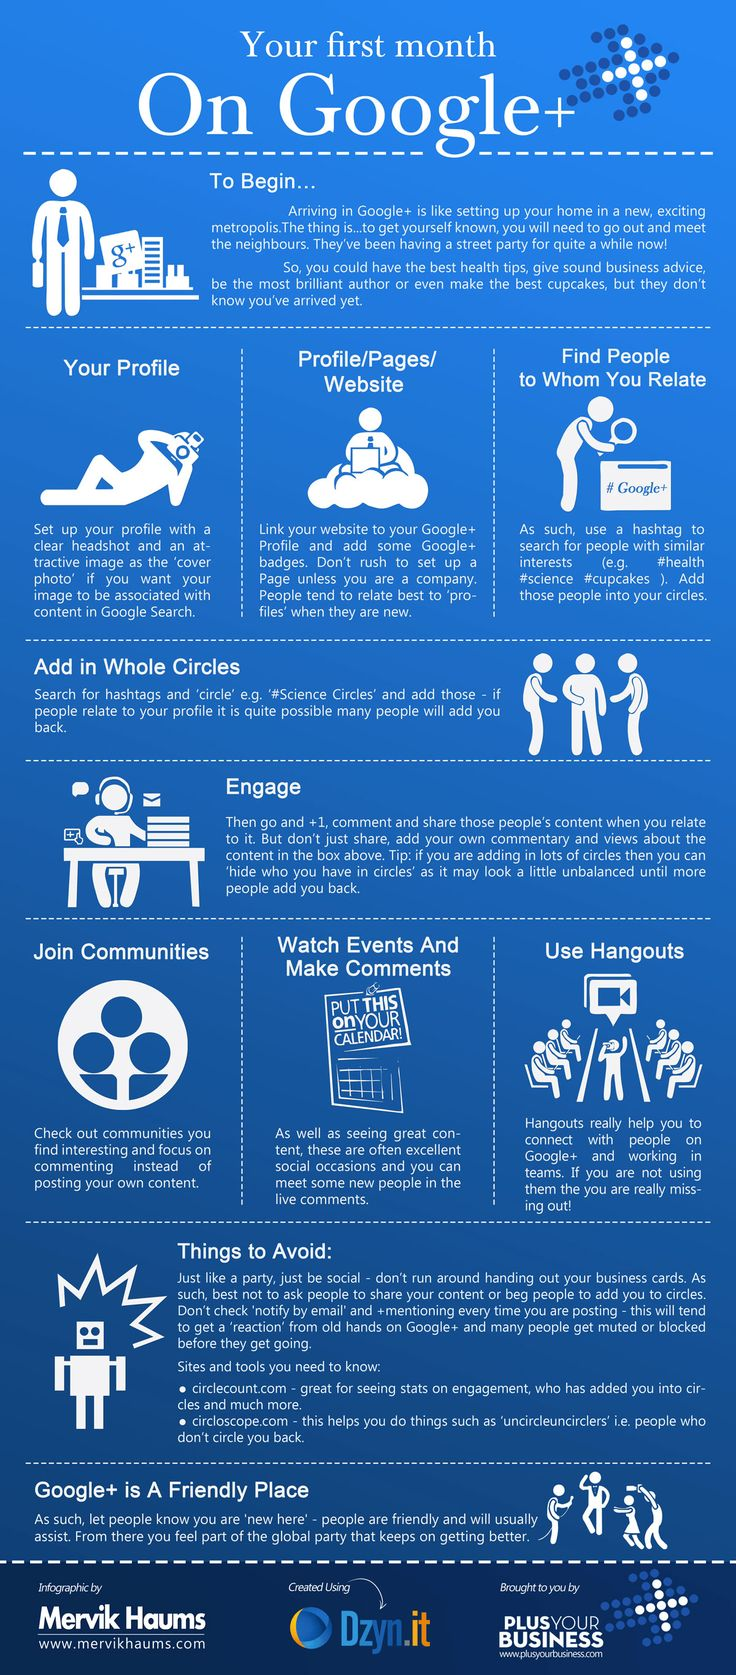 A Beginner's Guide to Google+ for Your Viewing Pleasure - The [Infographic] Rage is ON!  http://johneengle.com/beginners-guide-google-plus-infographic/  #GooglePlus, #Infographic